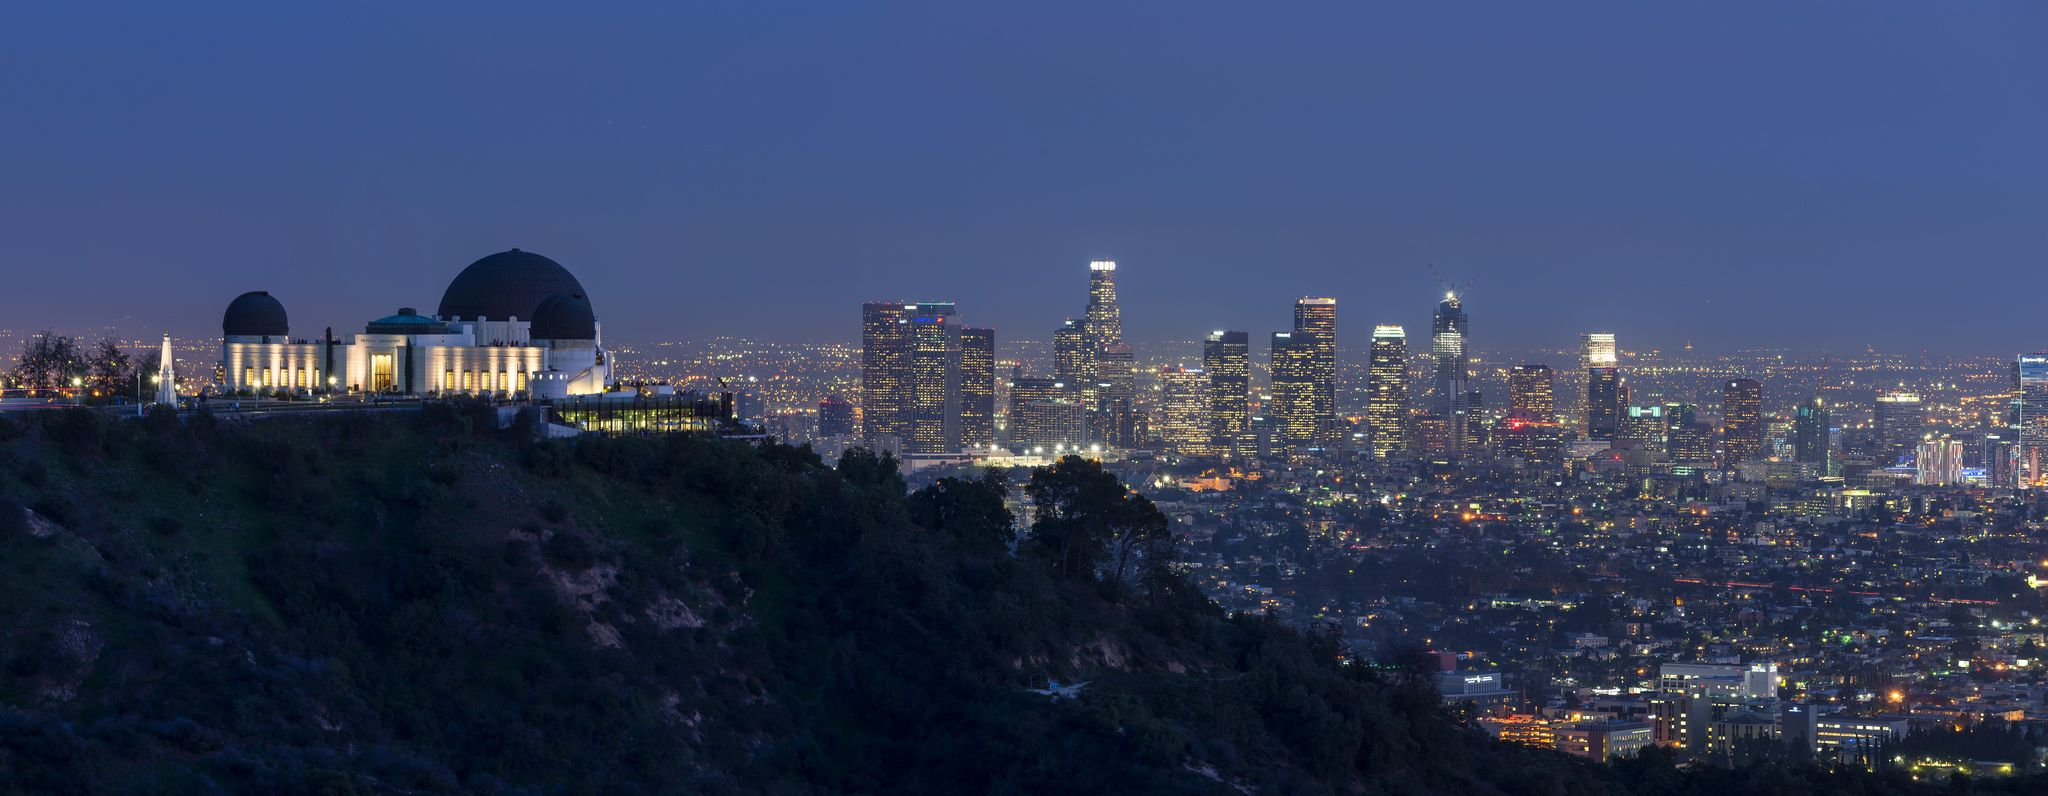 Must see Wallpaper Macbook Los Angeles - ceb87e2e5f0f5e8793e9381a06ec9617  You Should Have_297261.jpg